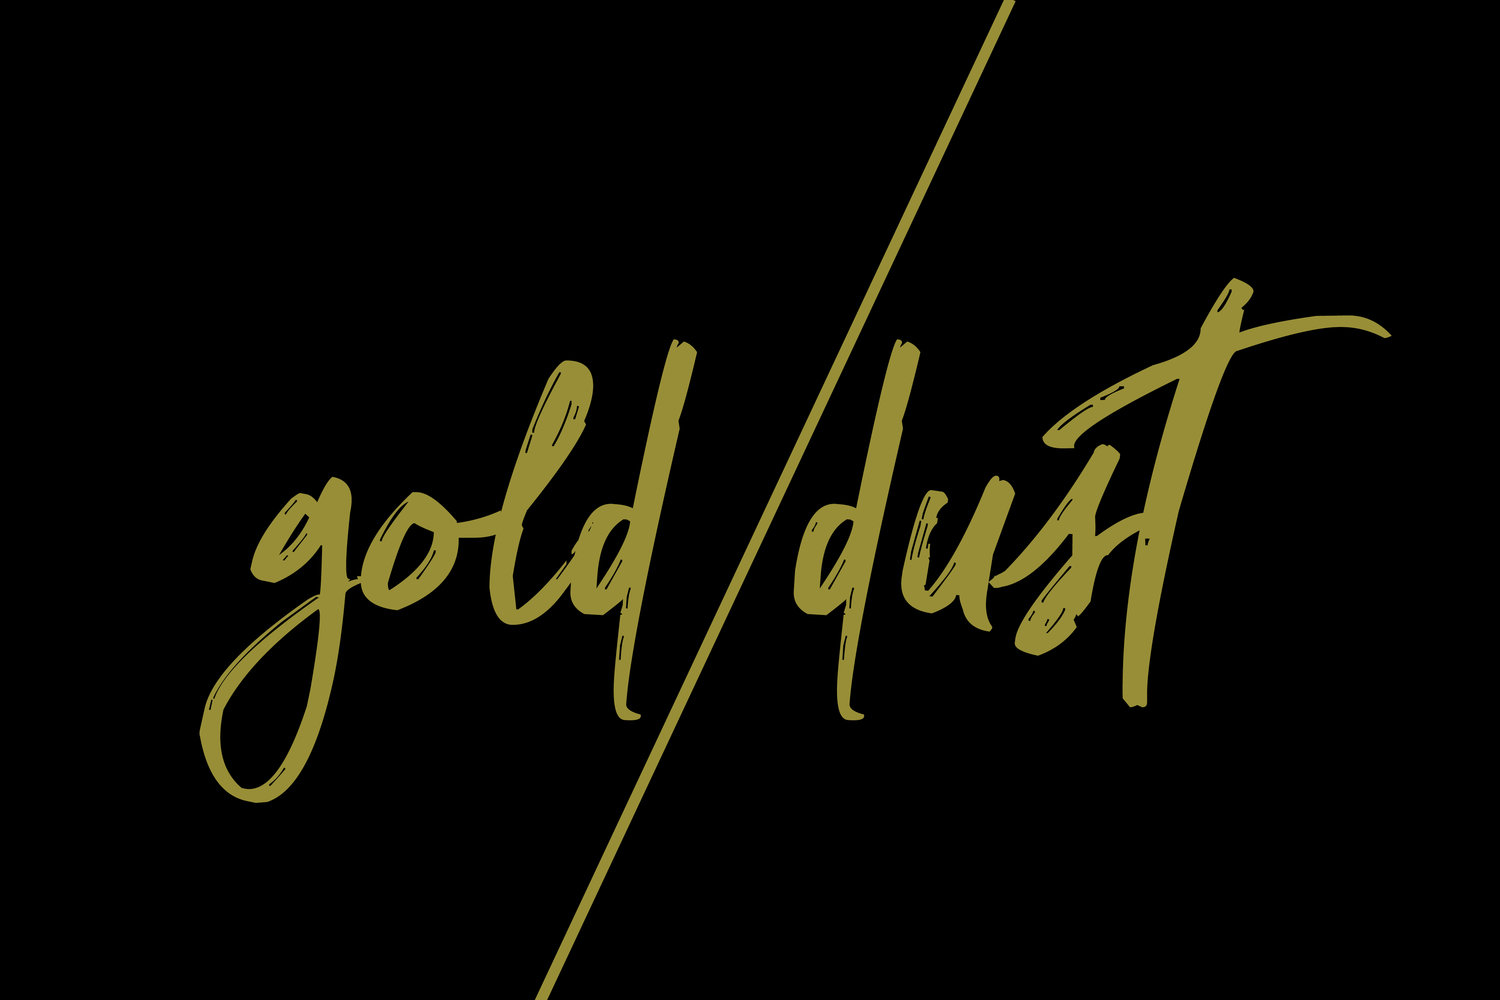 gold|dust